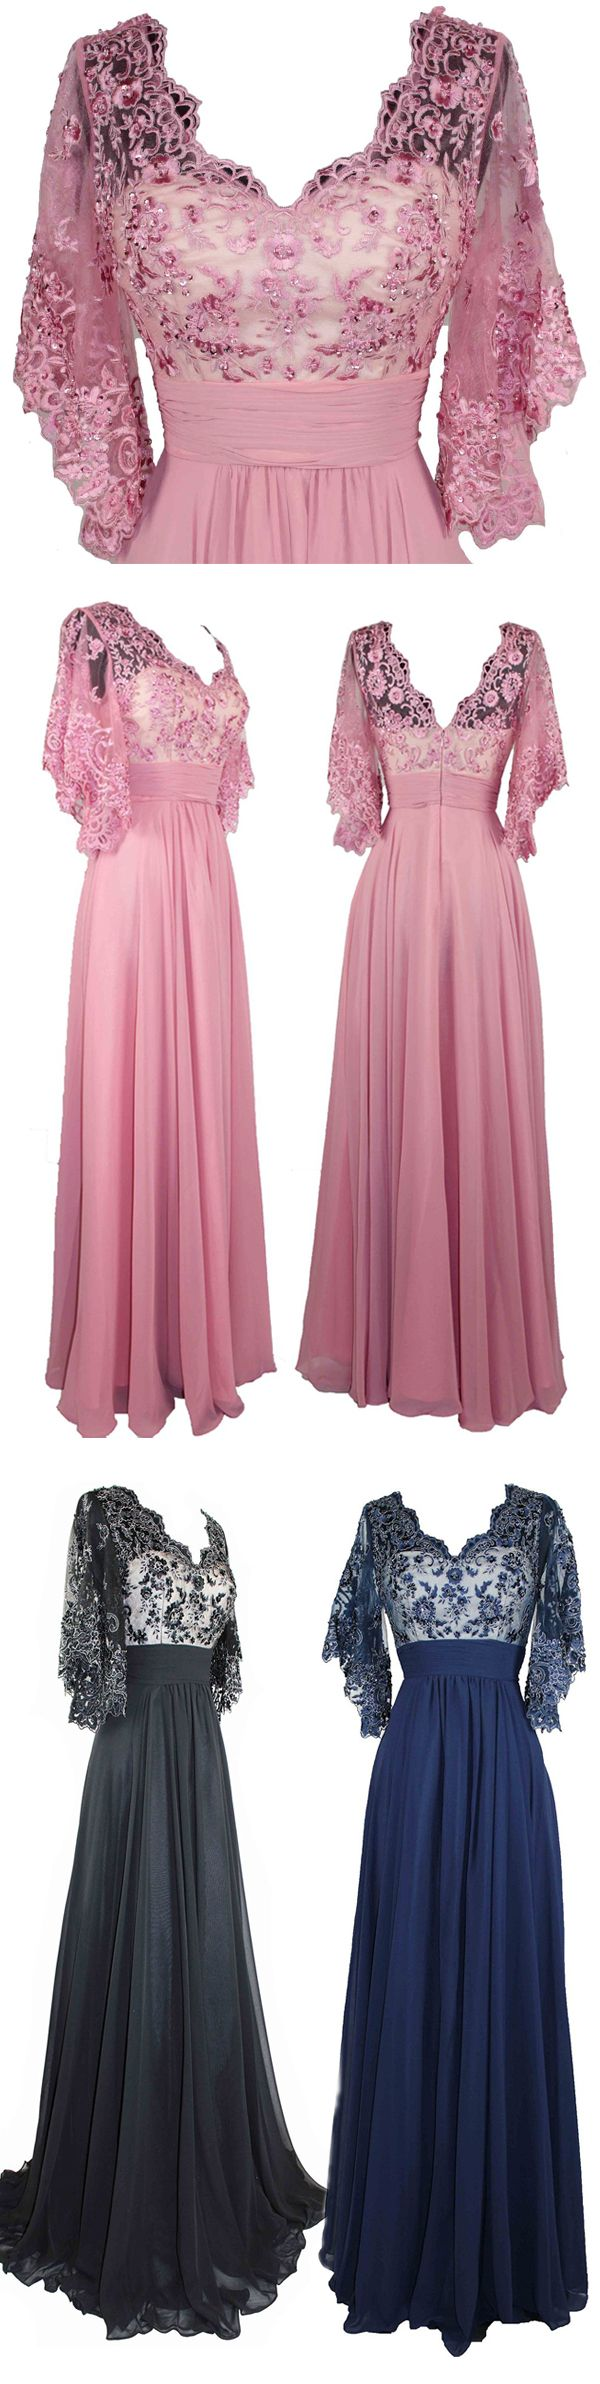 Exquisite V Neck Ruffle Sleeve Chiffon Long Prom Dress With Embroidery #prom #evening #party #dress